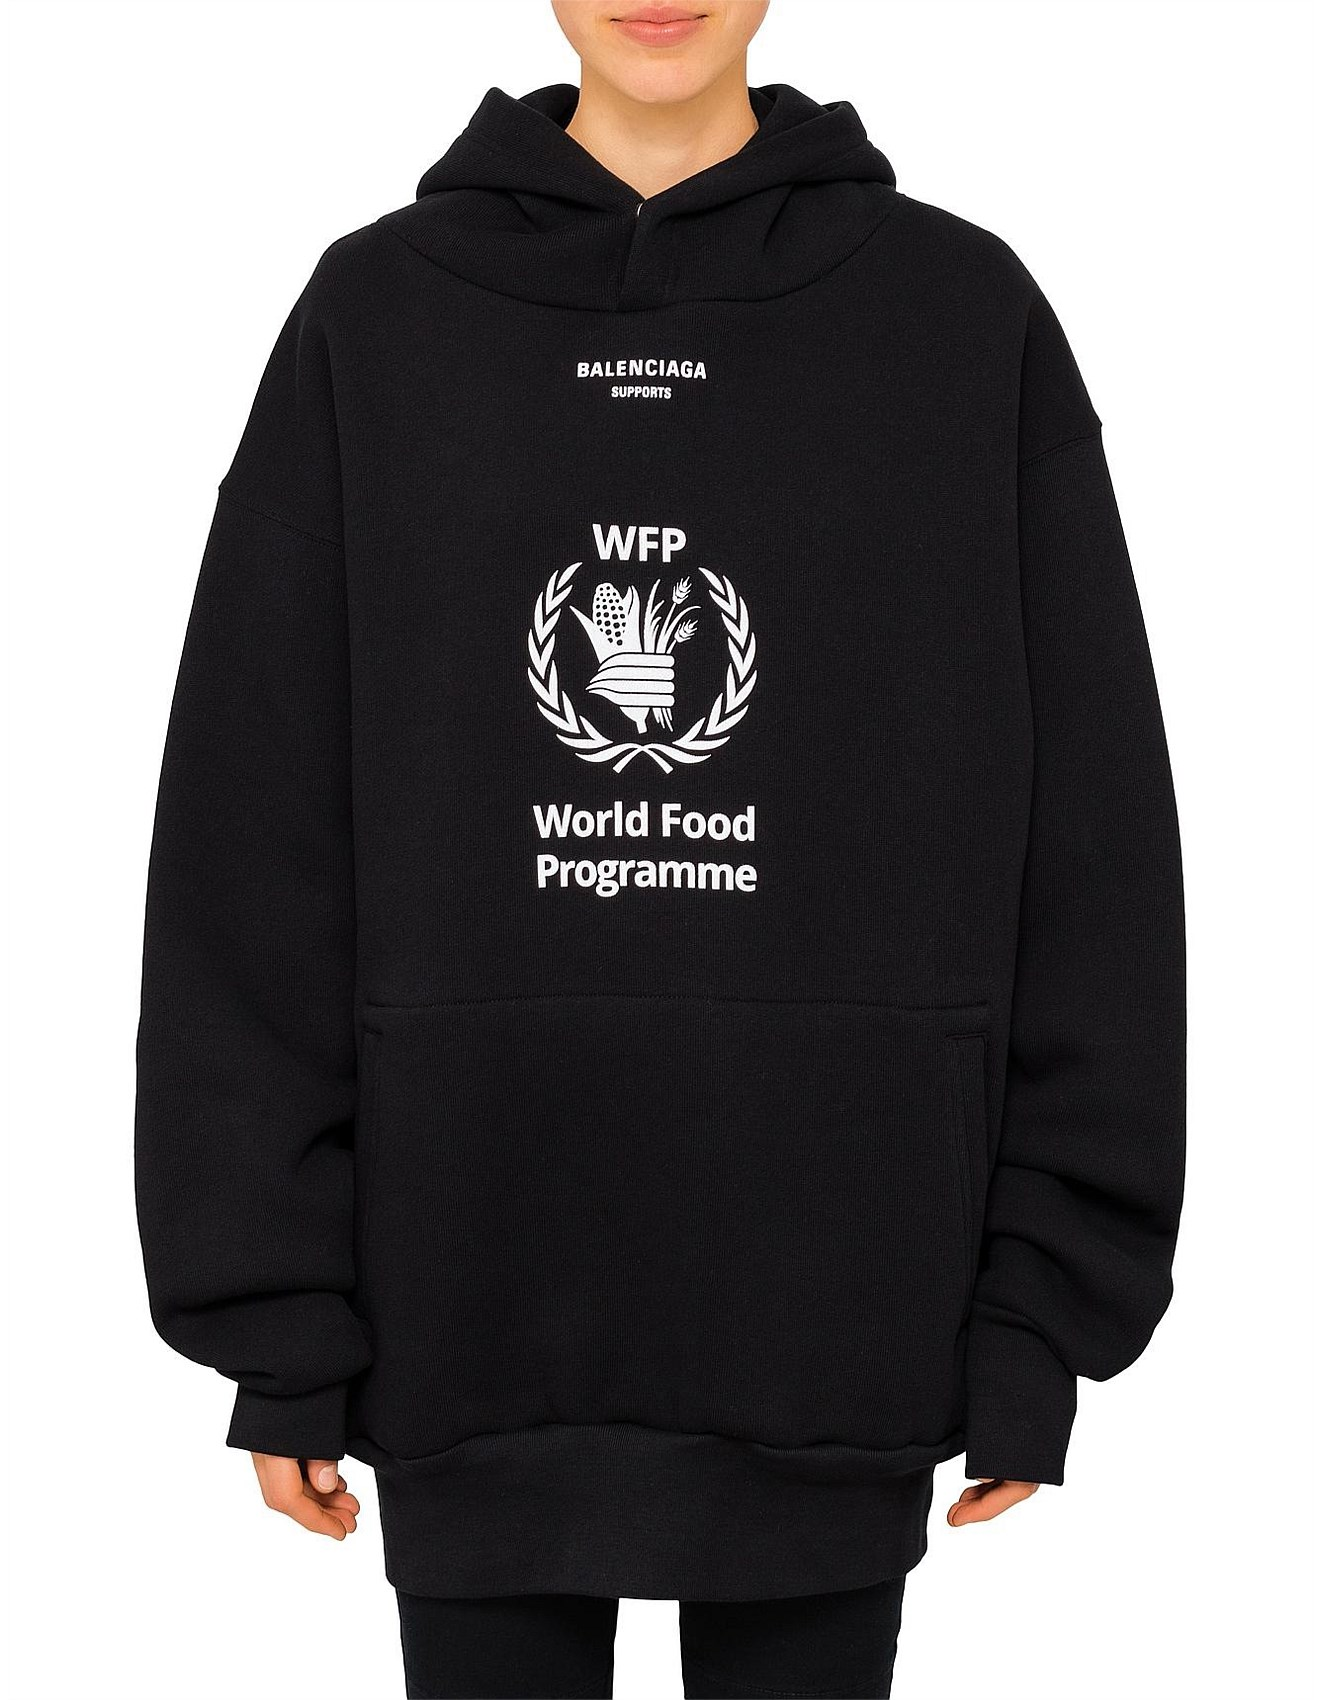 Balenciaga Buy Balenciaga Shoes Bags More David Jones World Food Programme Hoodie